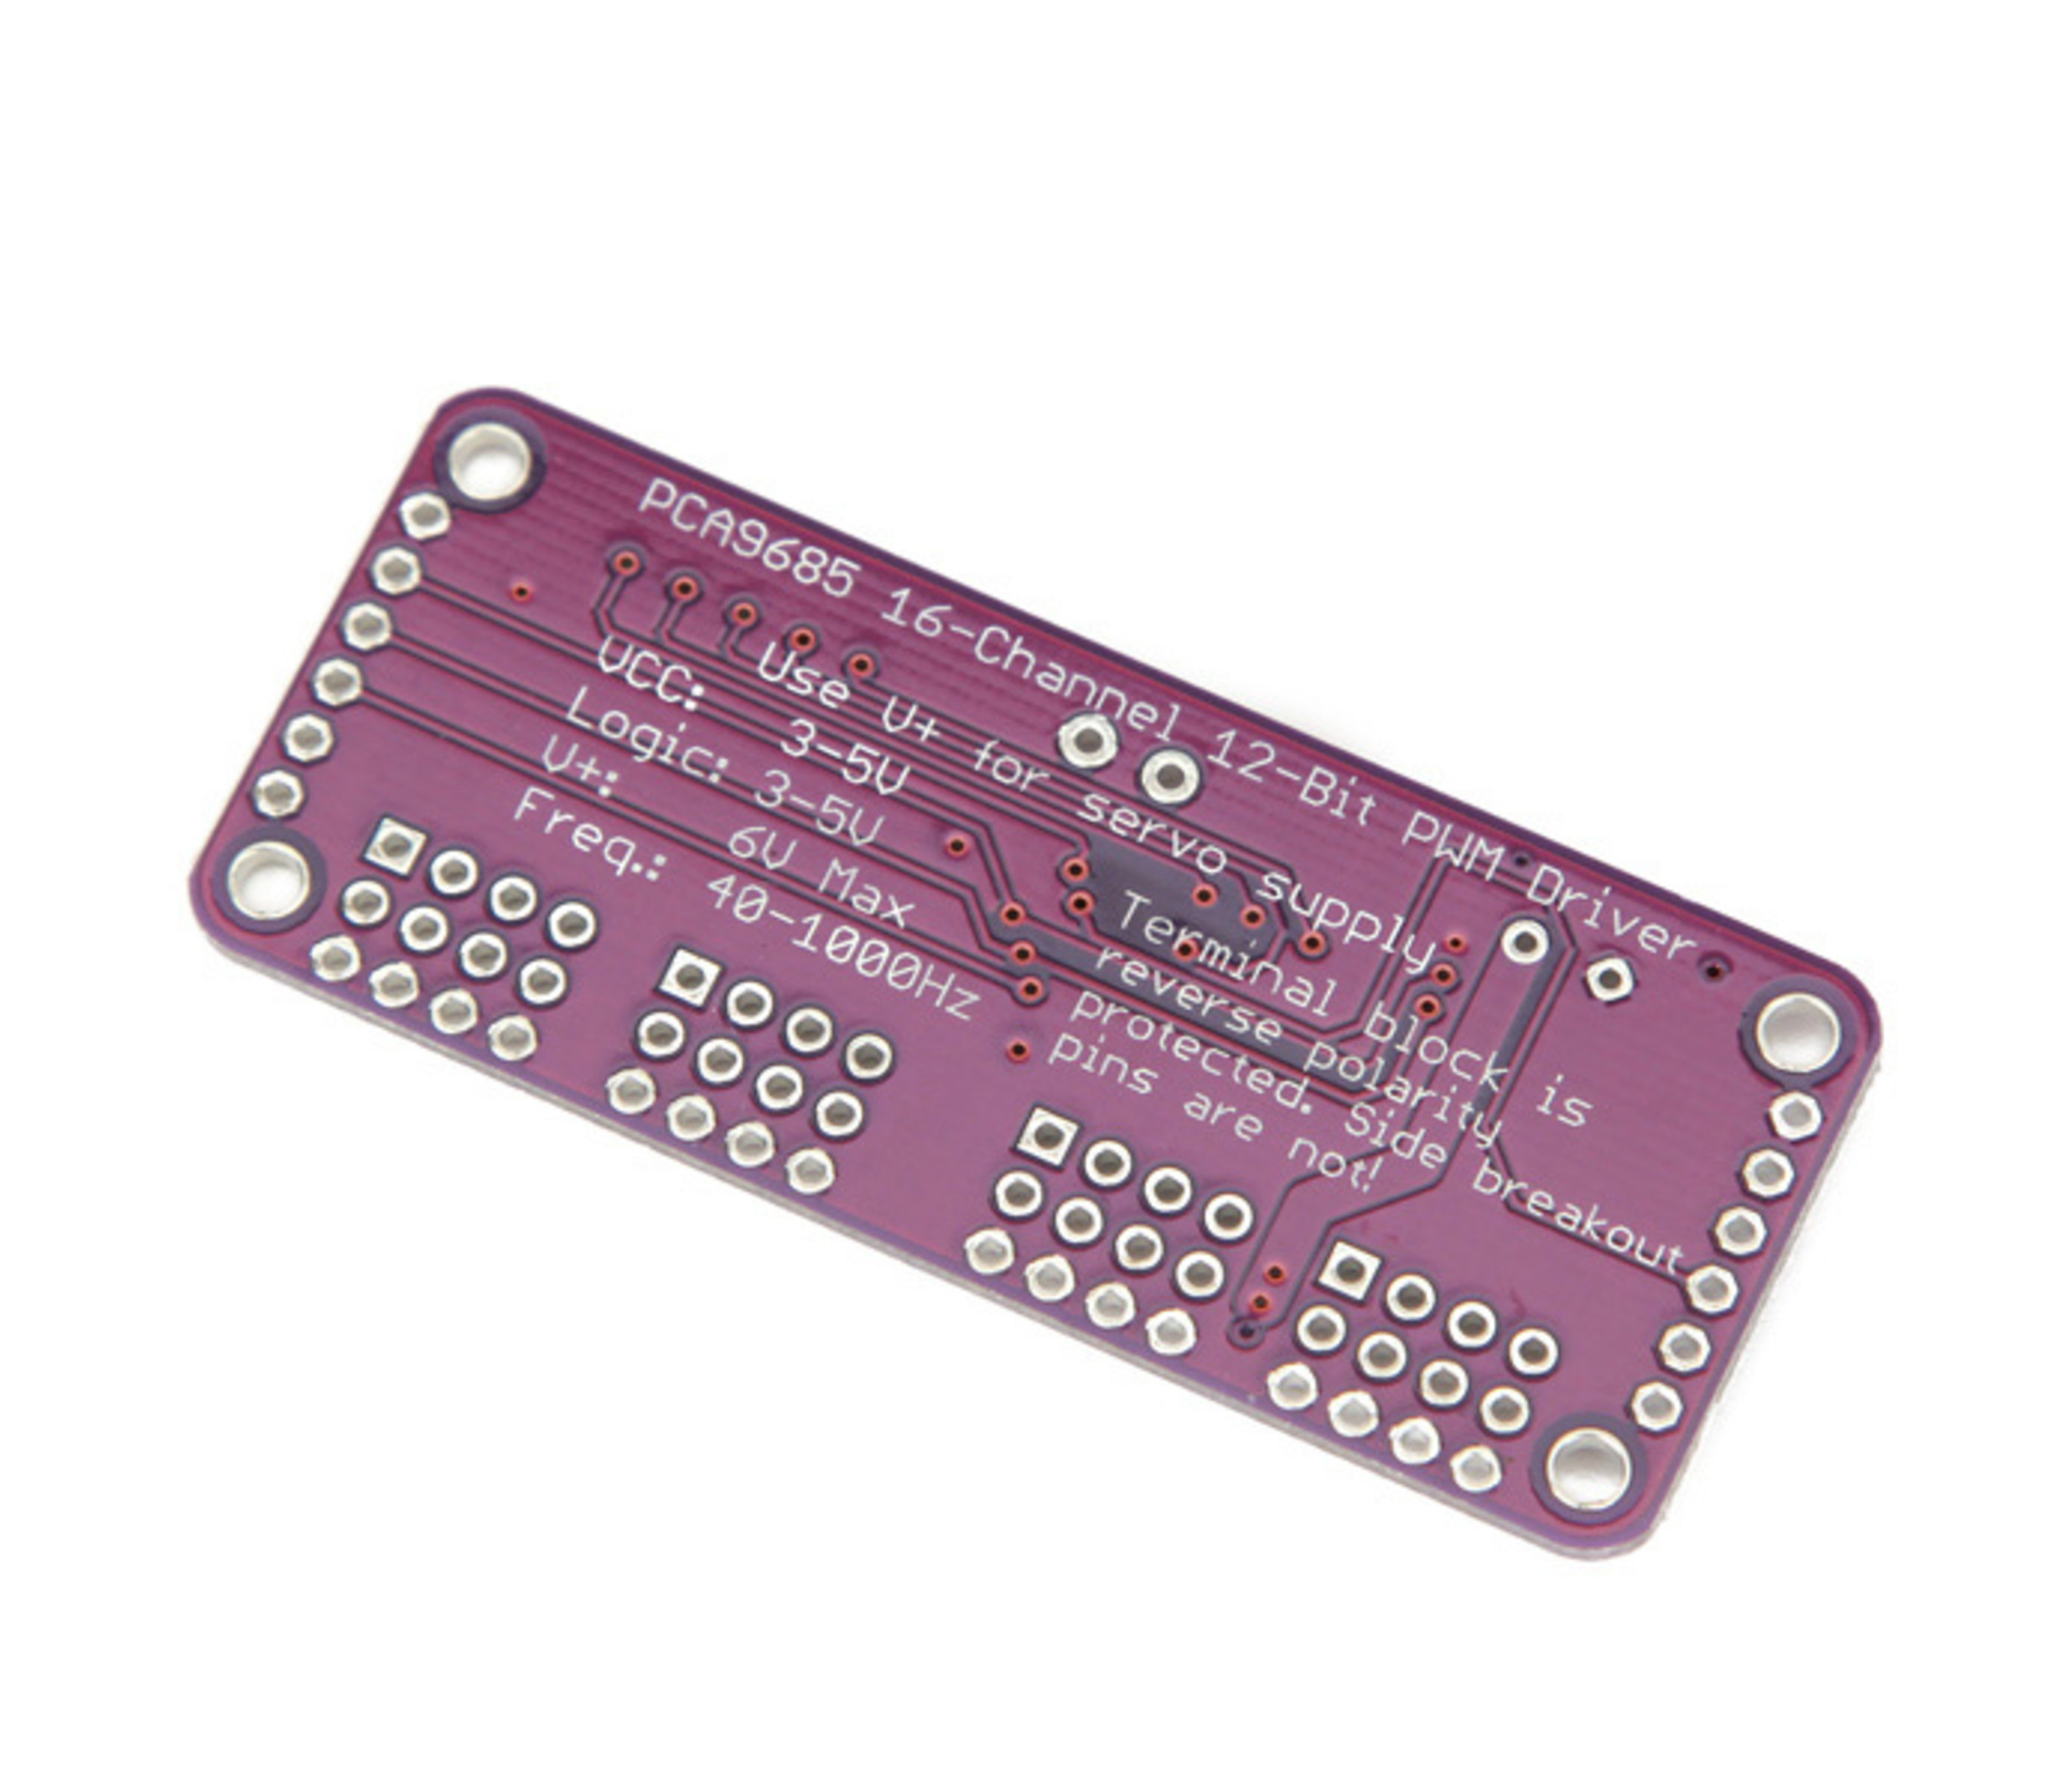 PCA9685 16-Channel 12-bit PWM/Servo Driver I2C interface